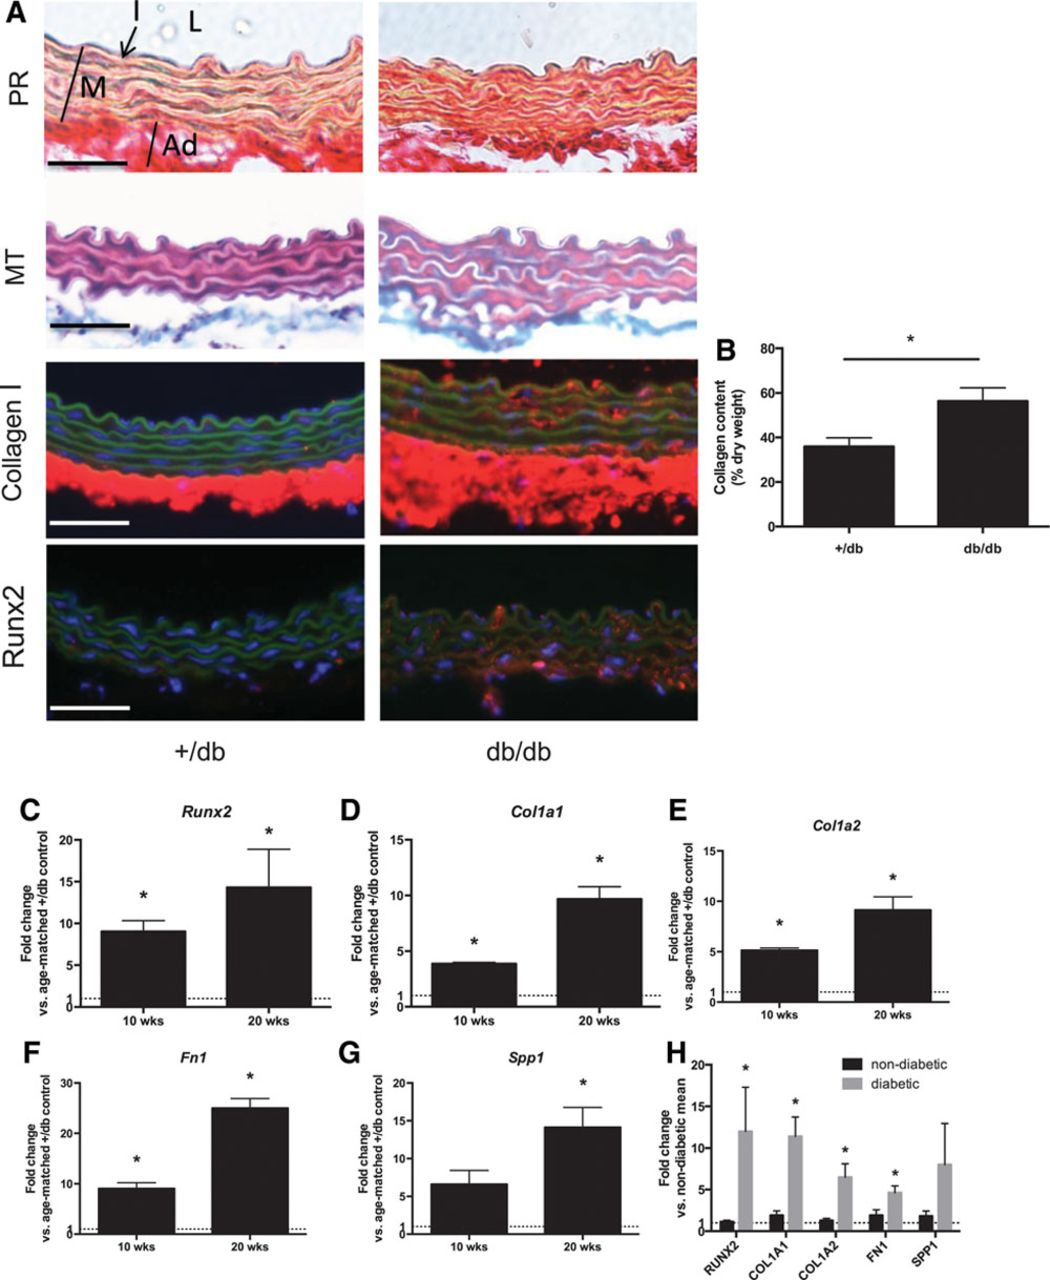 Transcription Factor Runx2 Promotes Aortic Fibrosis and Stiffness in